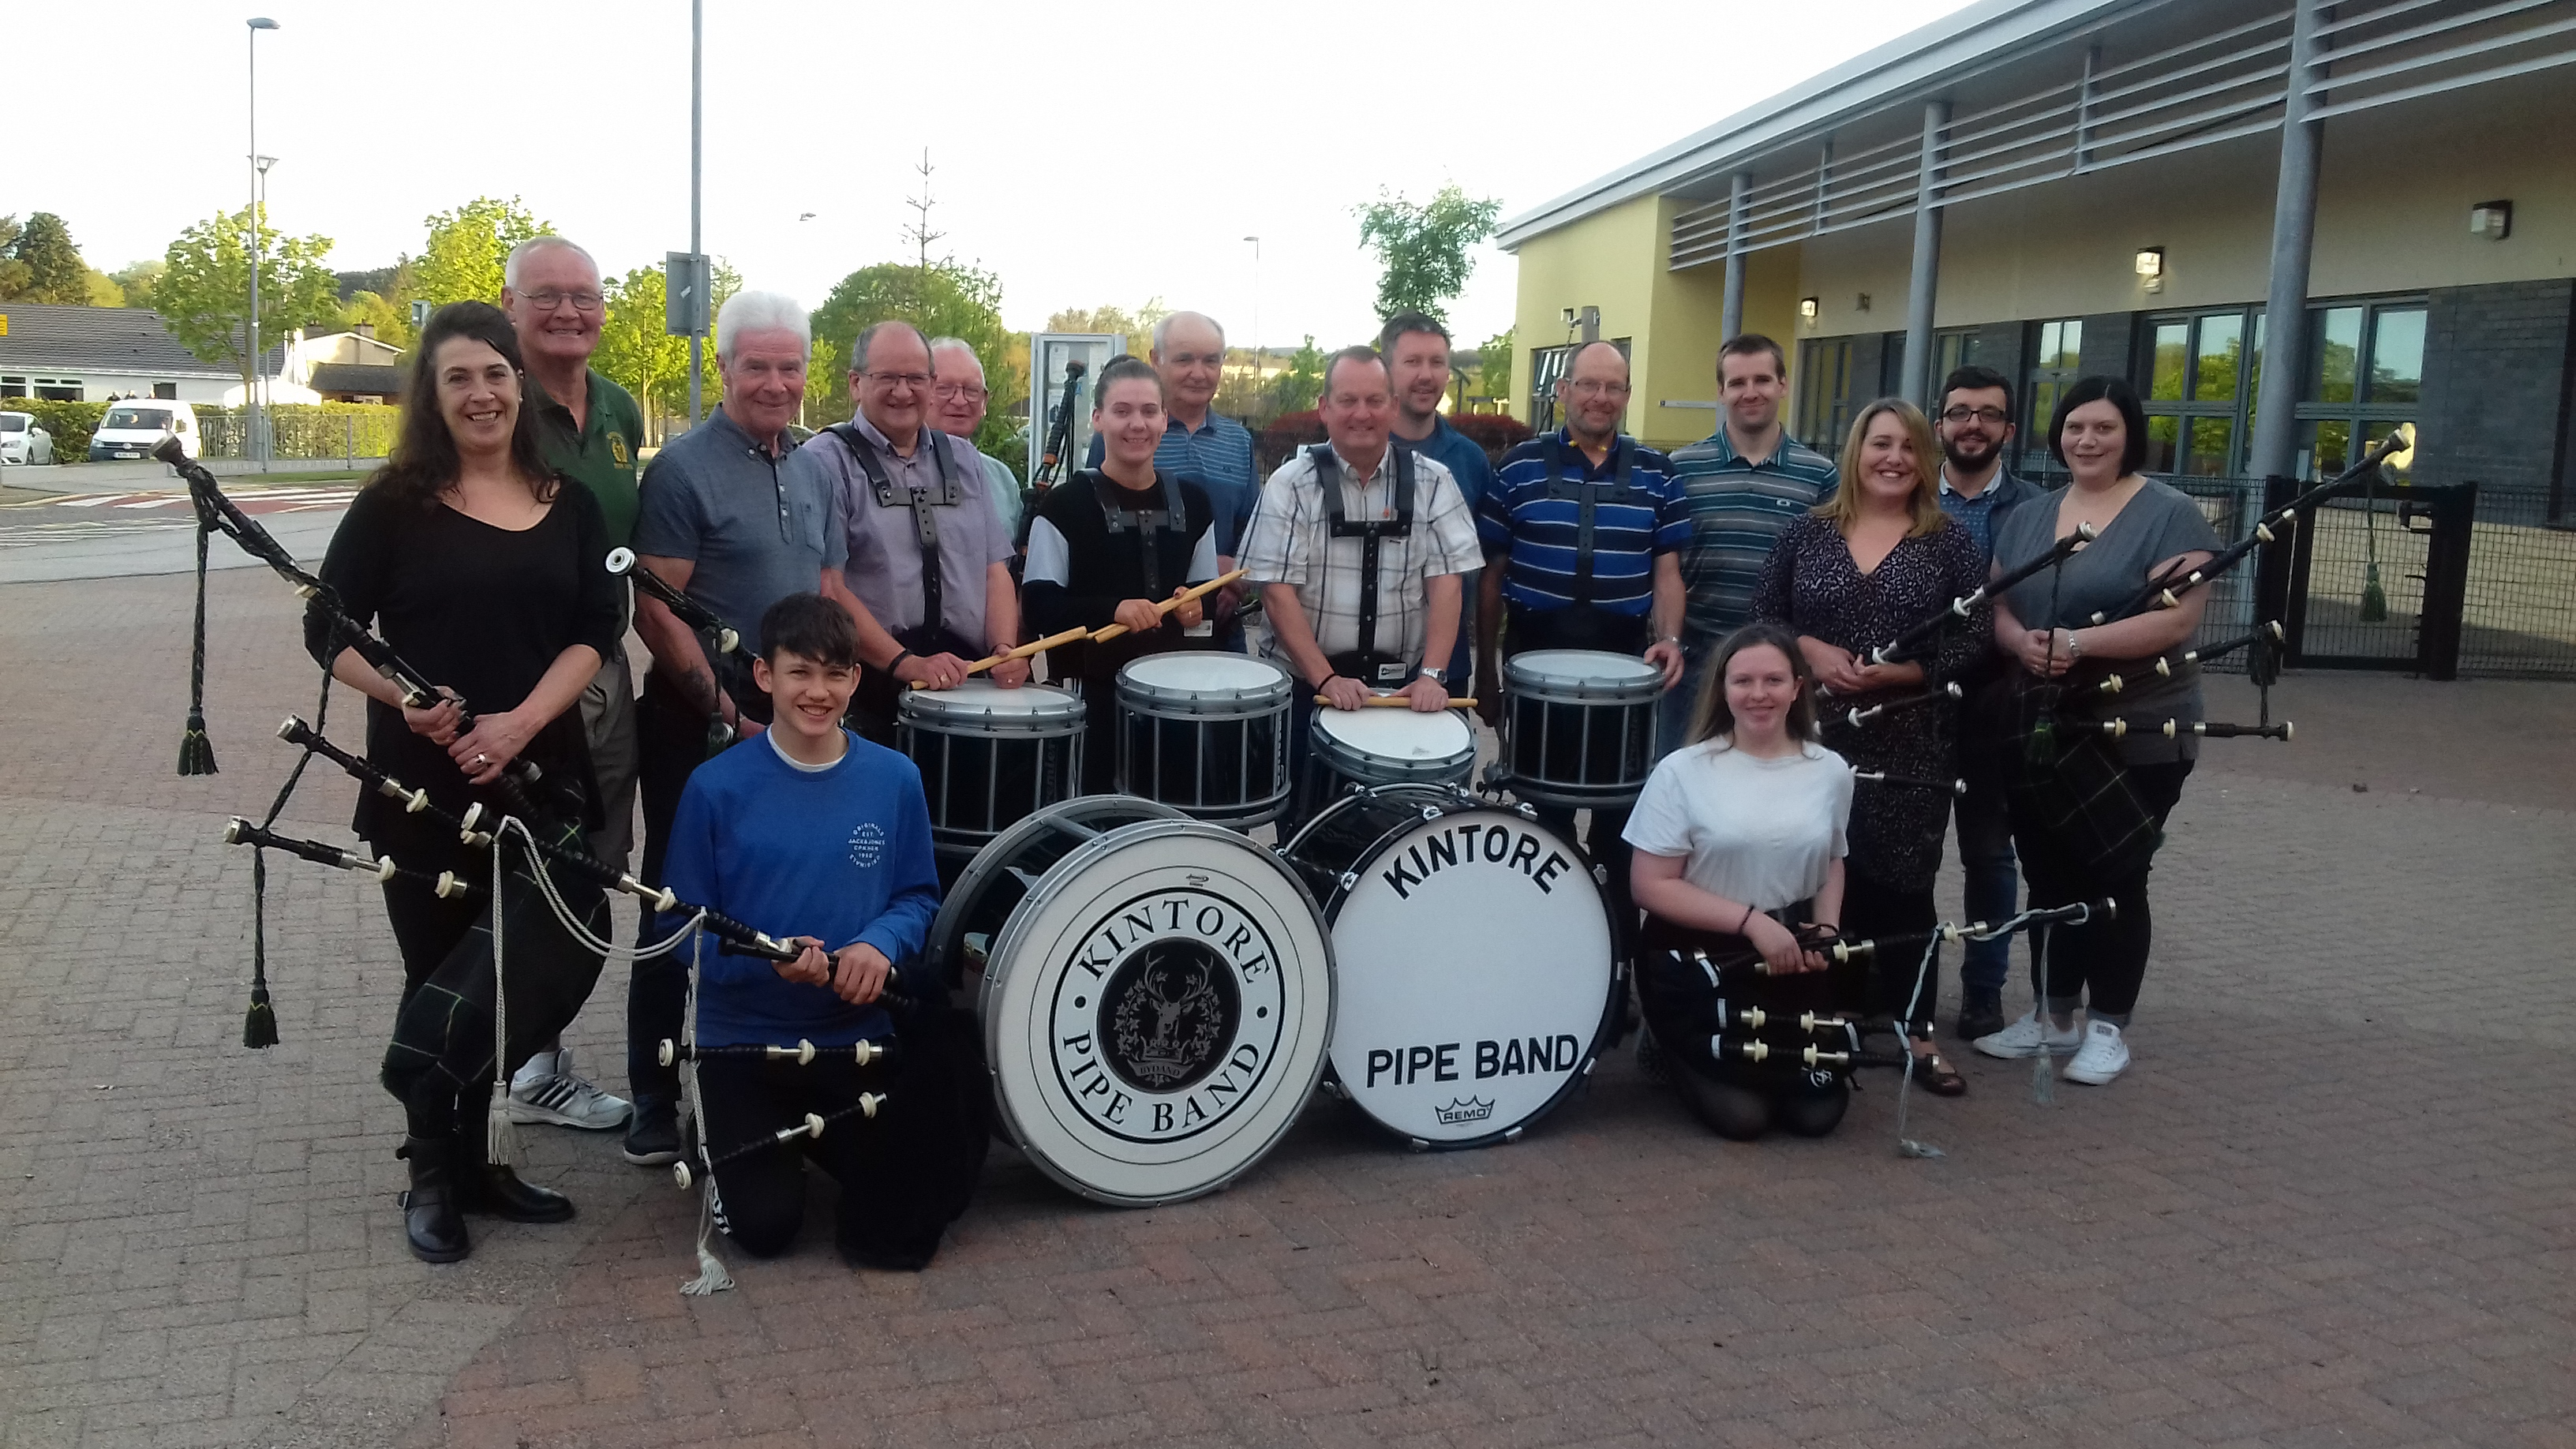 Kintore Pipe Band.